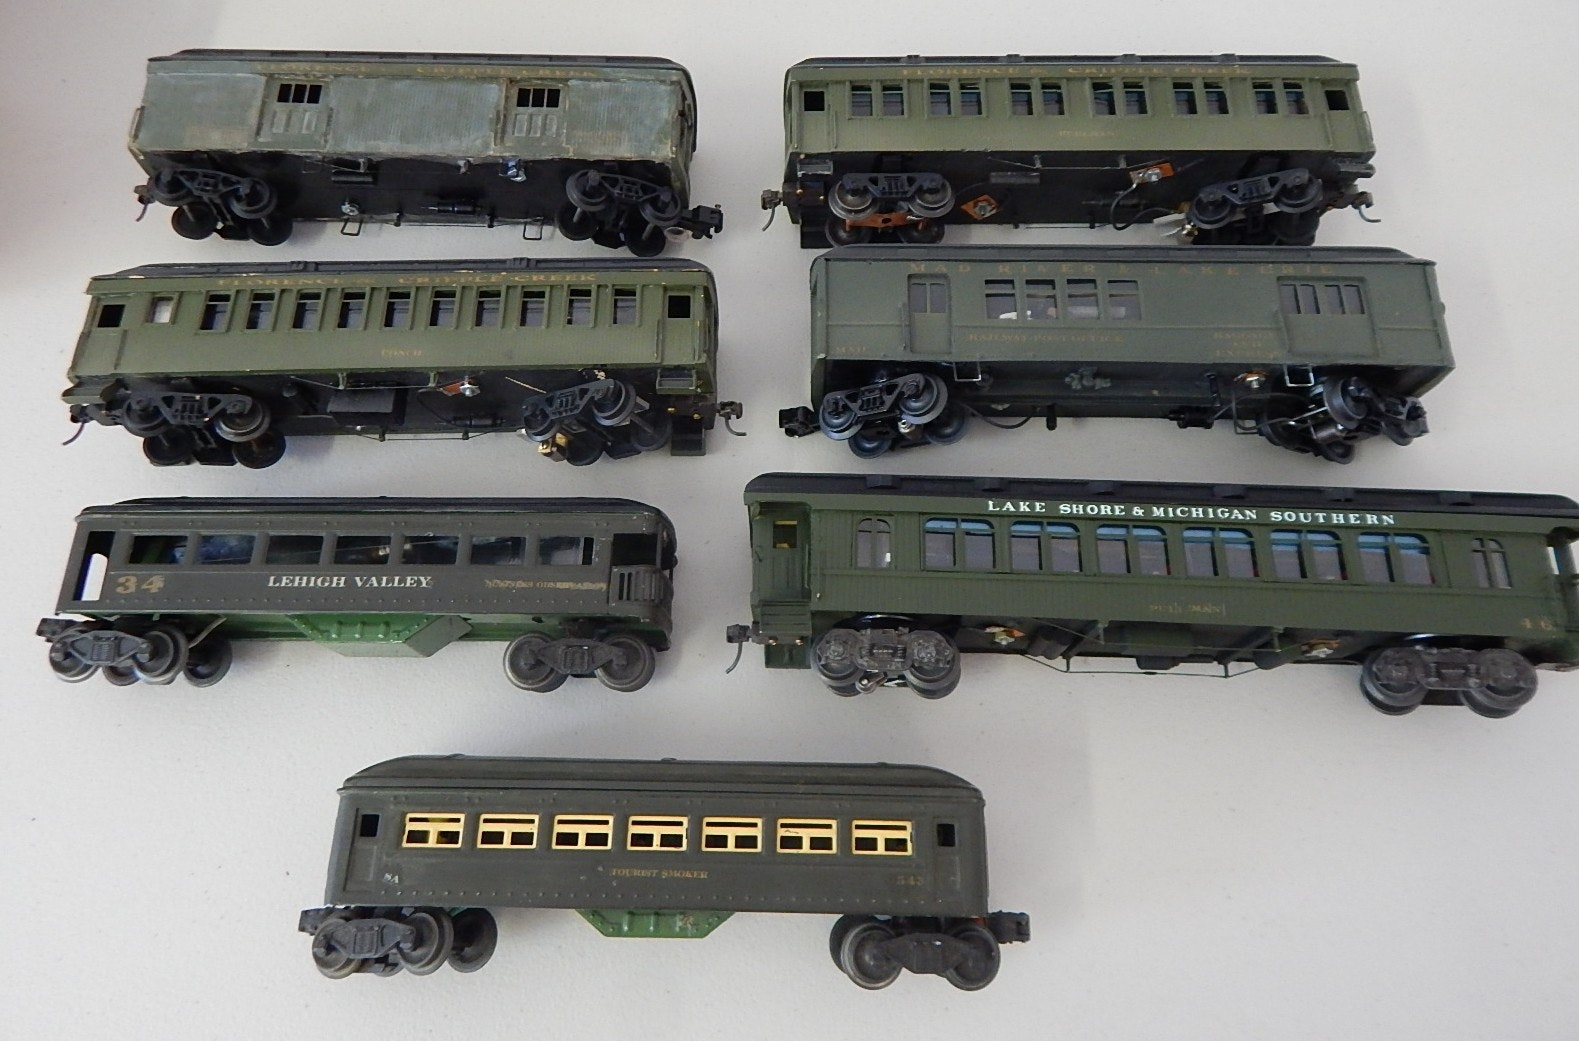 Seven Vintage O-Gauge Green Train Cars, Lehigh Valley, Mad River and Lake Erie